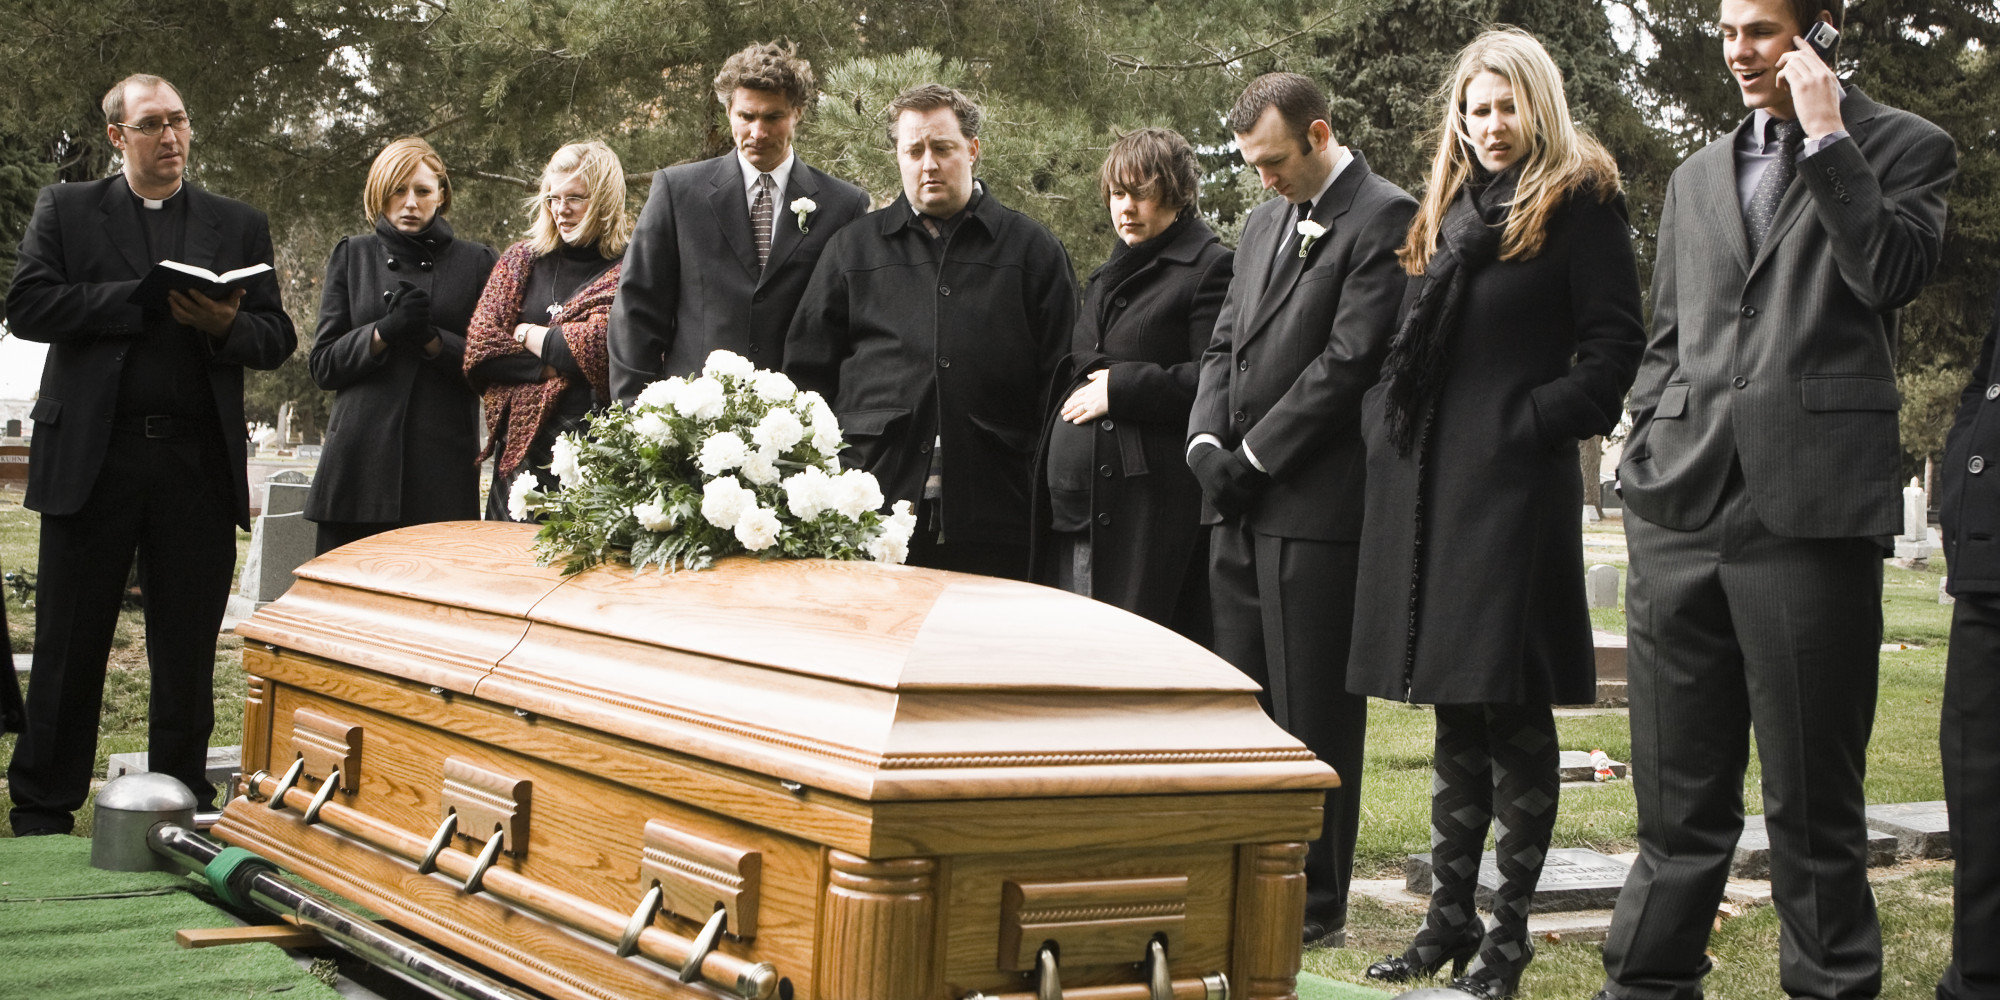 Unusual Funeral Ceremony Requests On The Rise Including